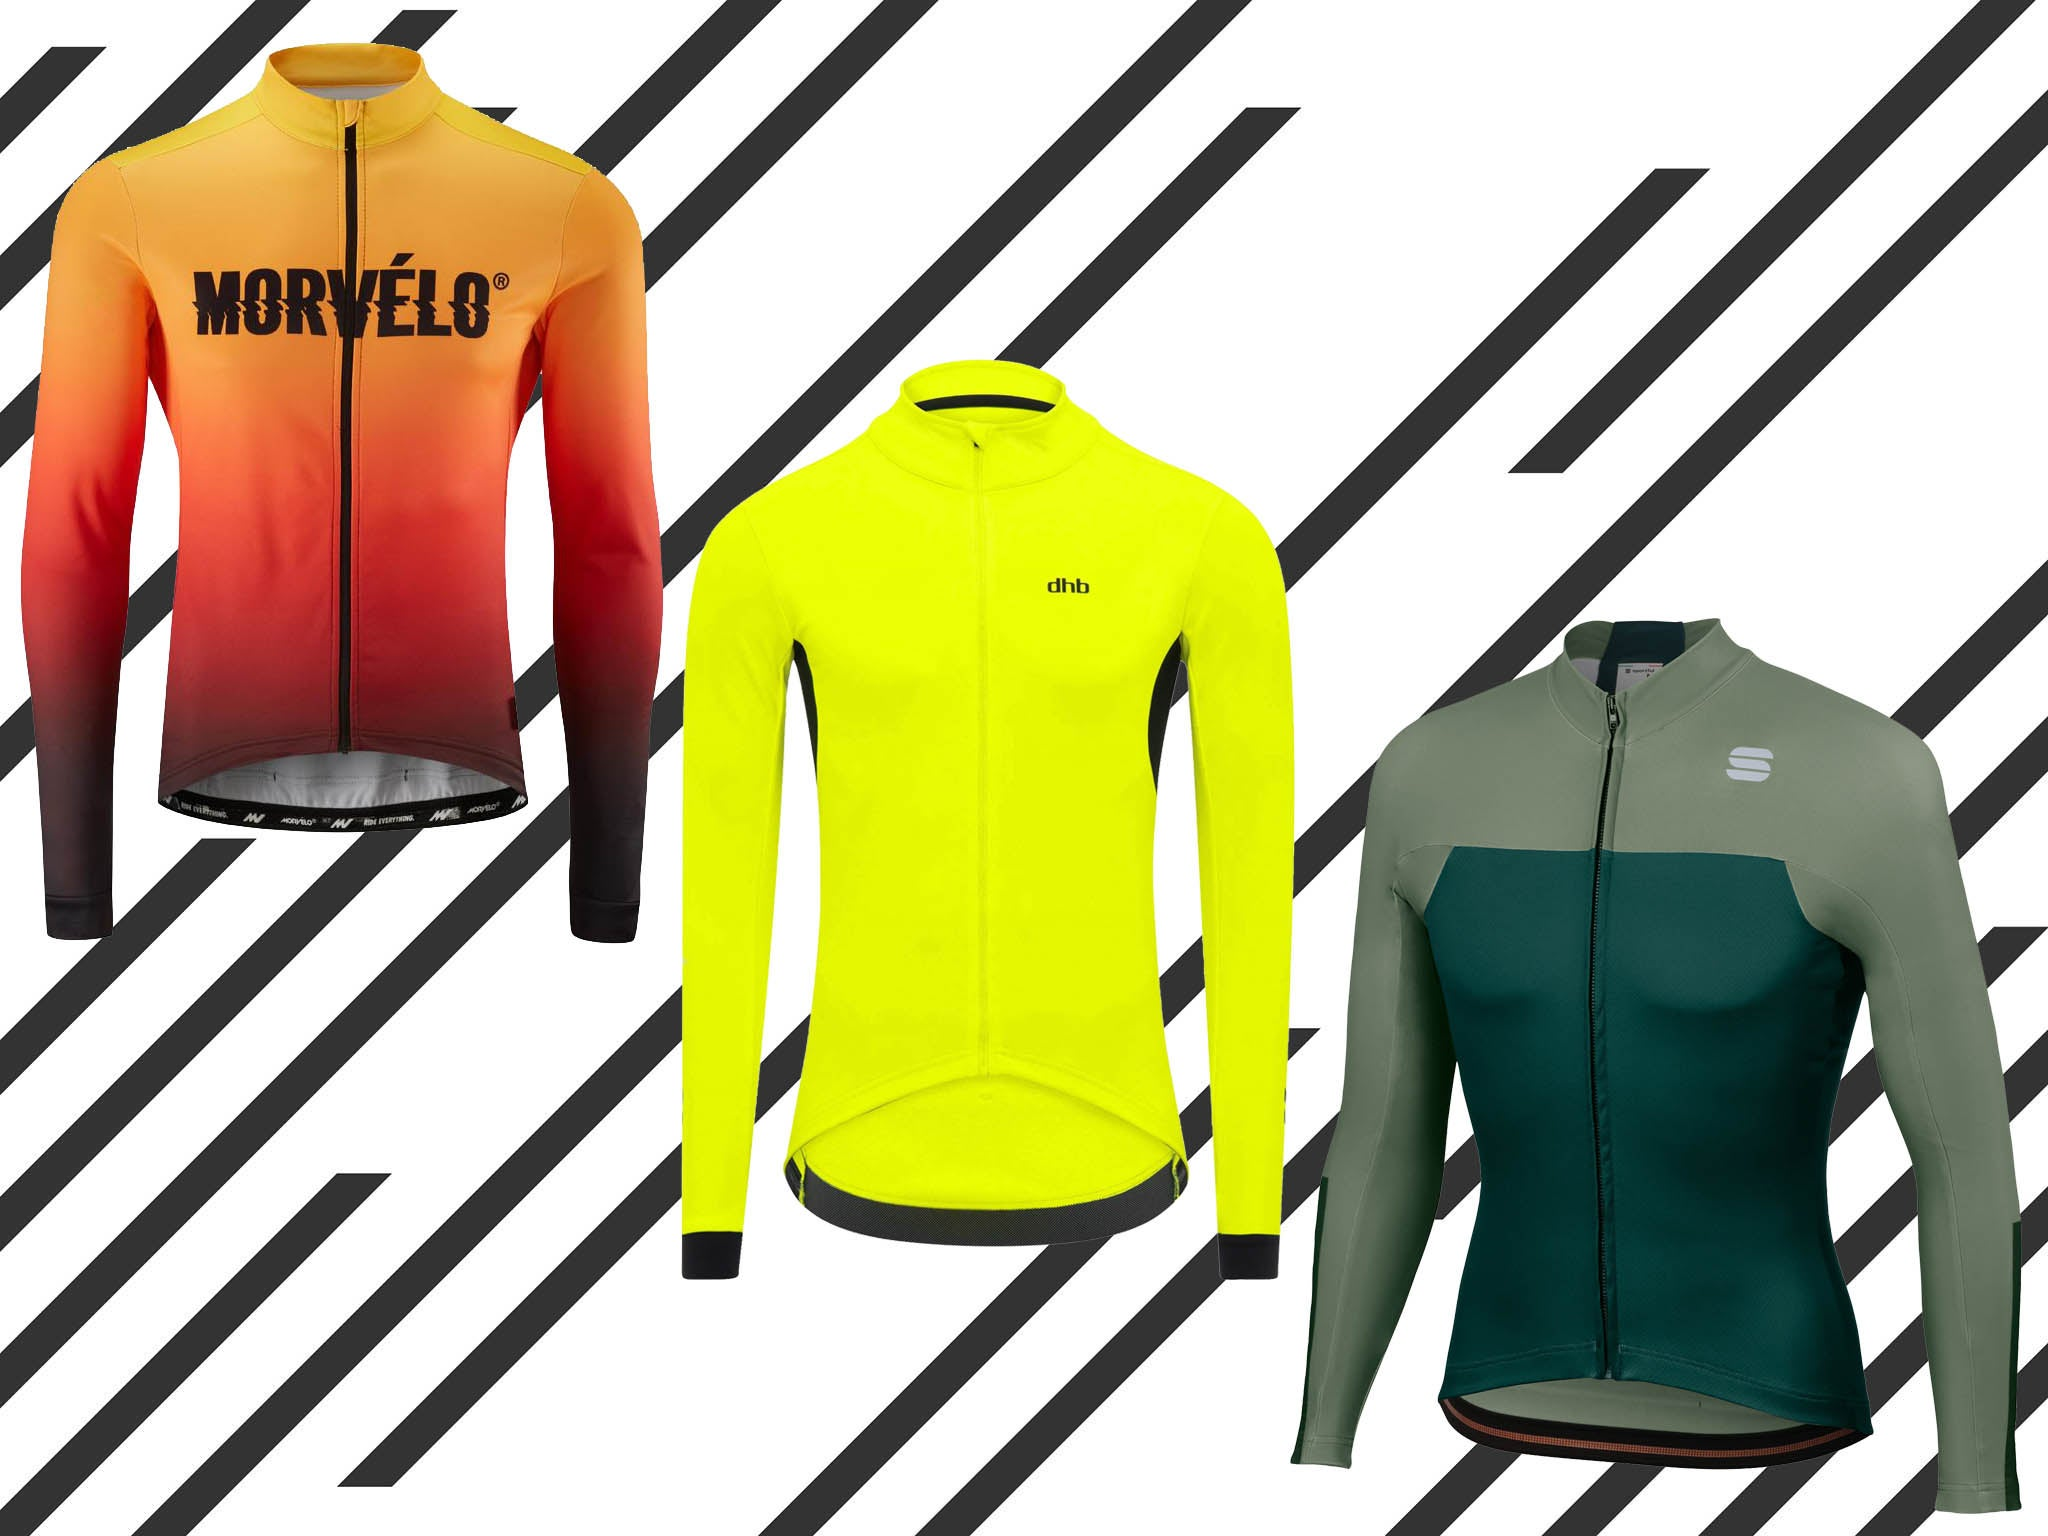 10 best men's cycling jerseys for autumn/winter that are weatherproof and warm